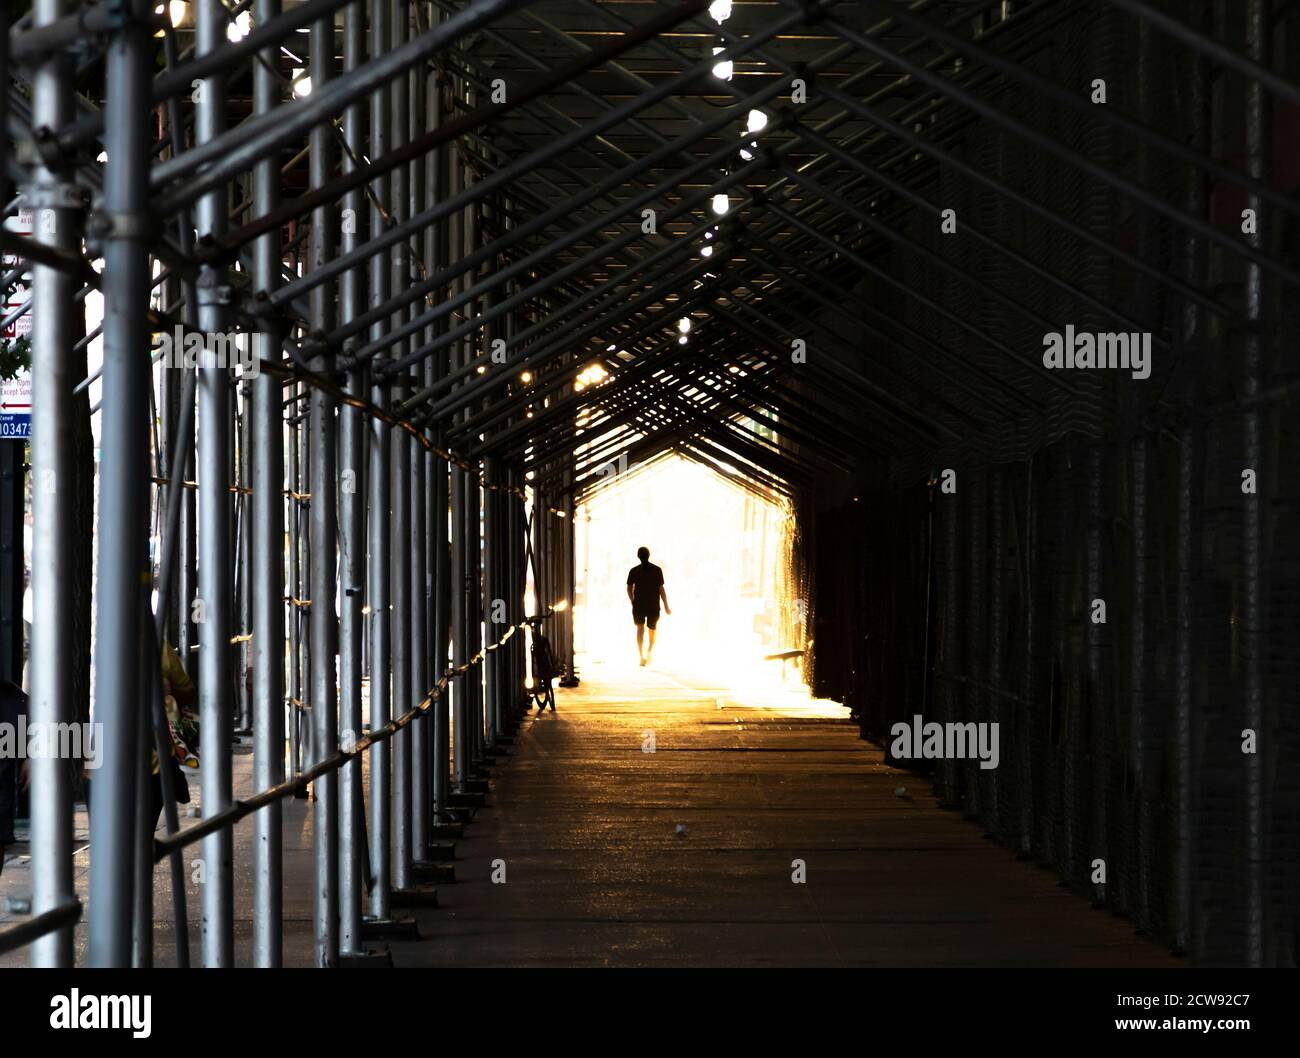 Man walking down the city sidewalk under construction scaffolding with a bright light glowing in the background Stock Photo